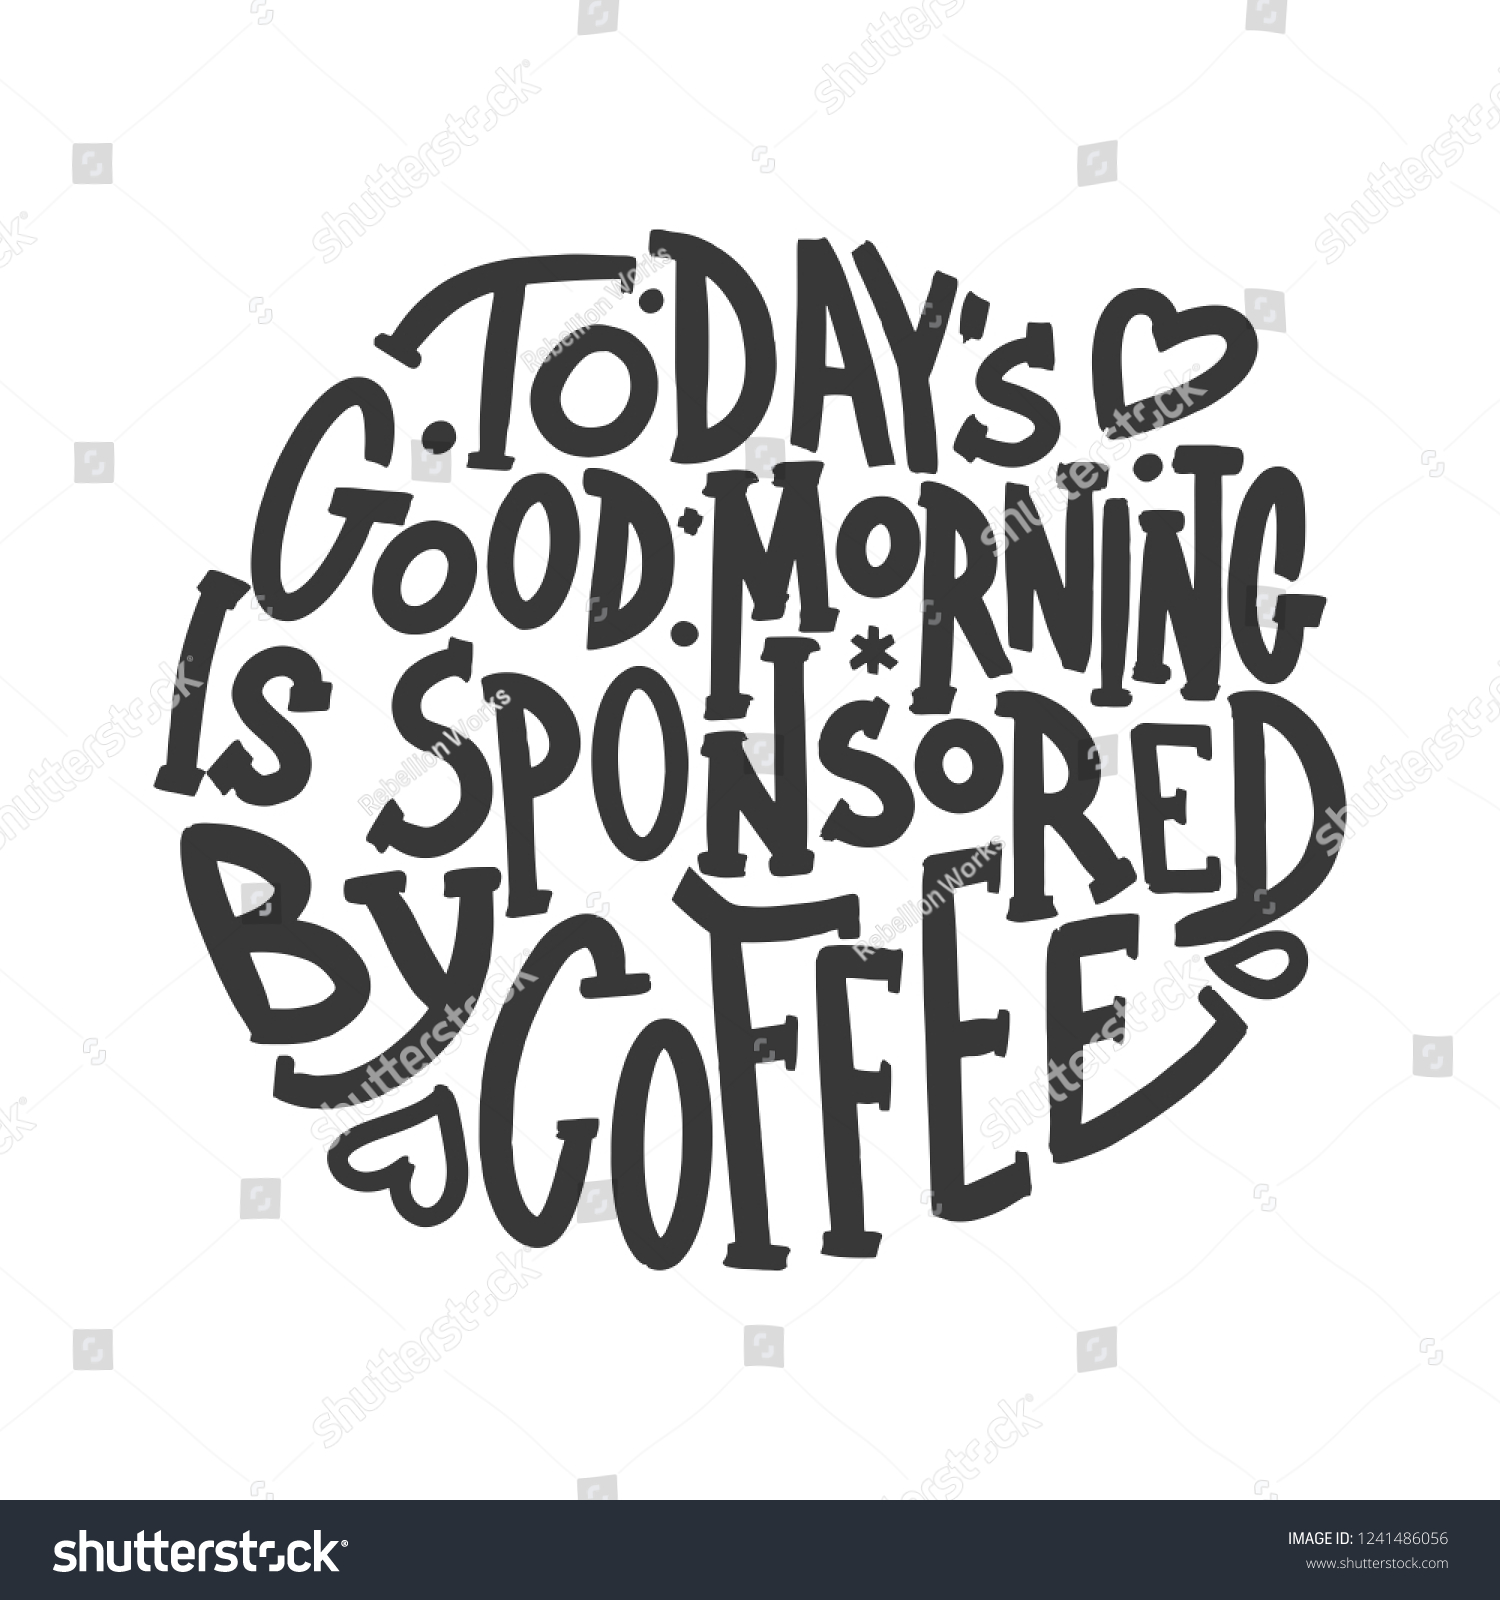 Todays Good Morning Sponsored By Coffee Stock Image